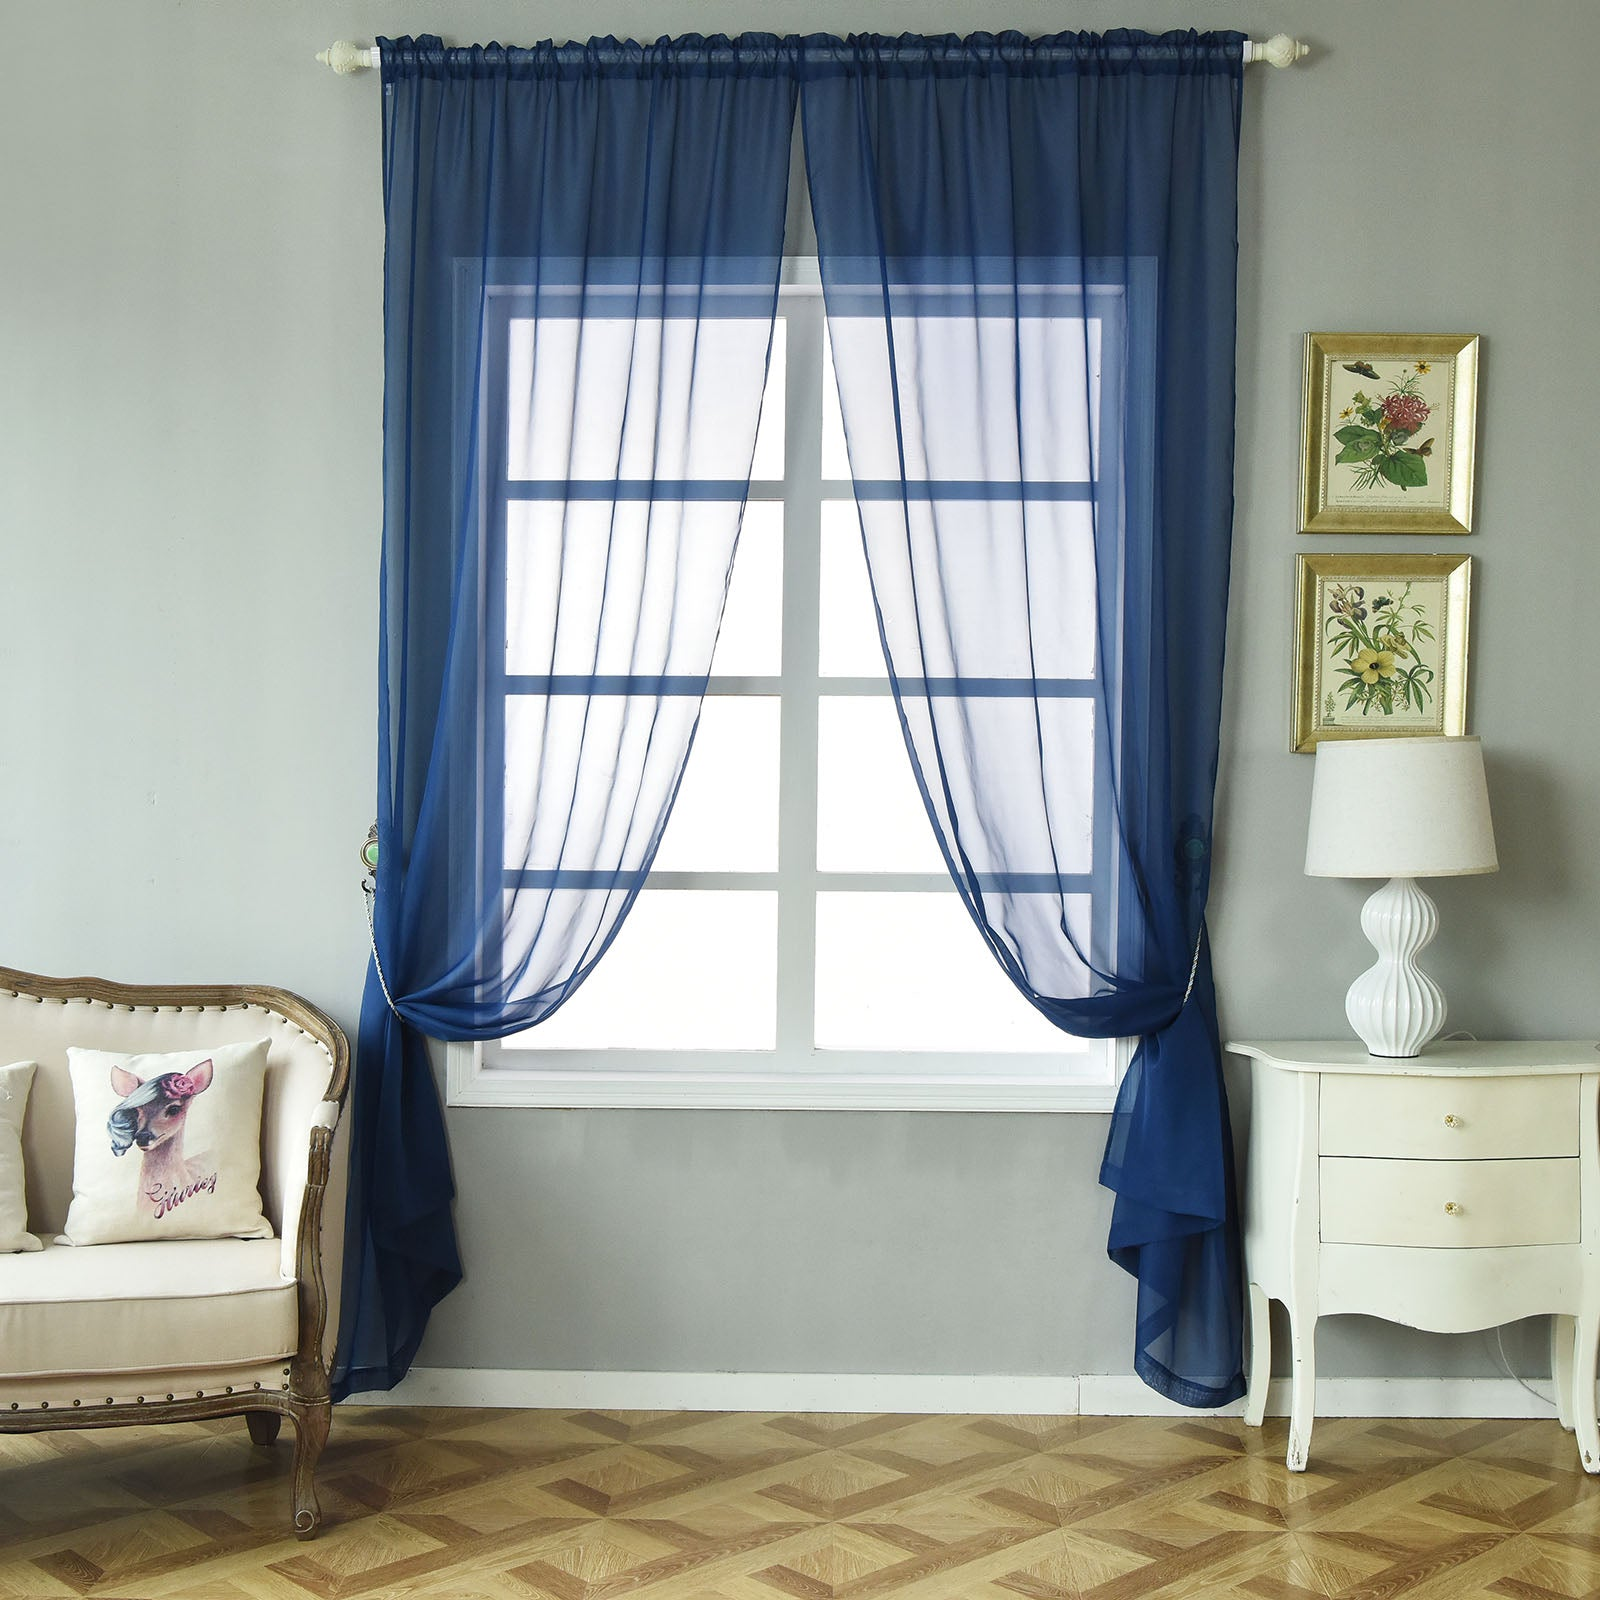 target delightful shades window sheer curtains curtain panels navy outdoor blackout turquoise s eclipse treatments drapes